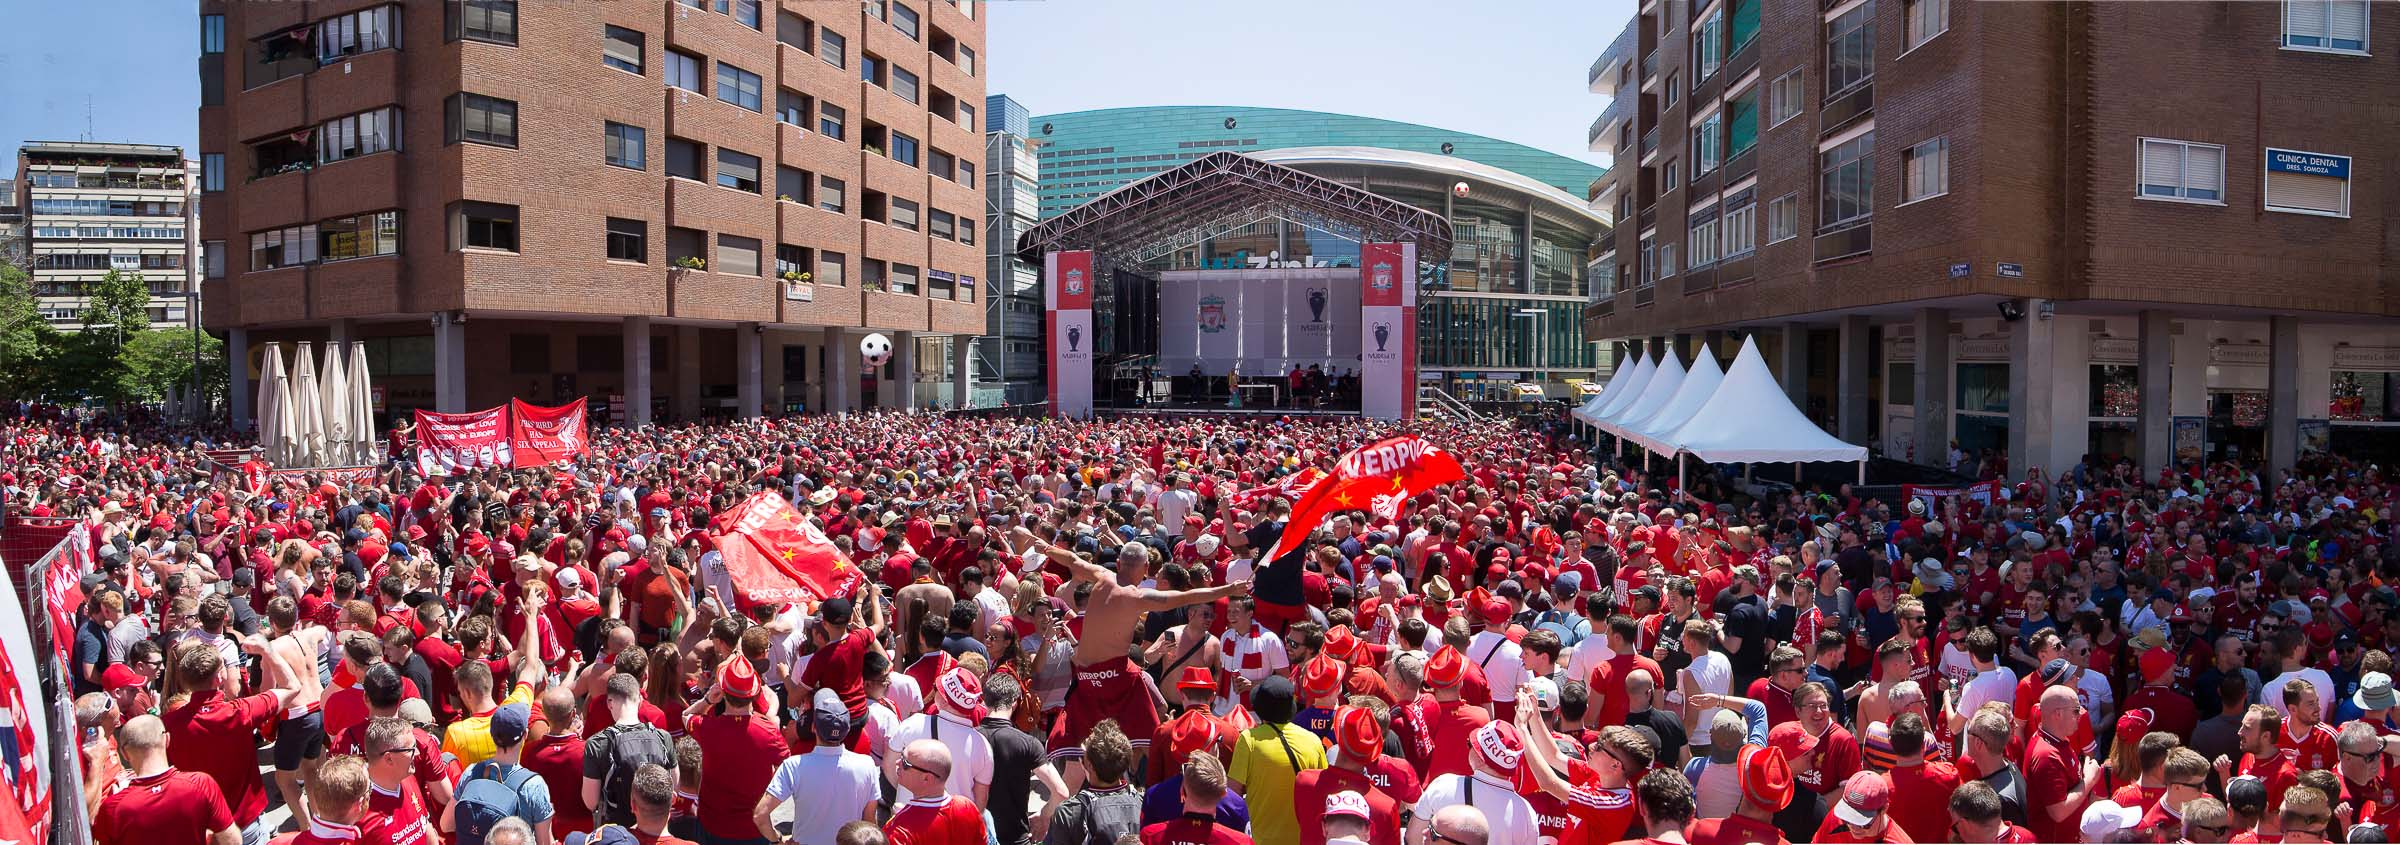 PANORAMA LIVERPOOL FANZONE UEFA MADRID 2